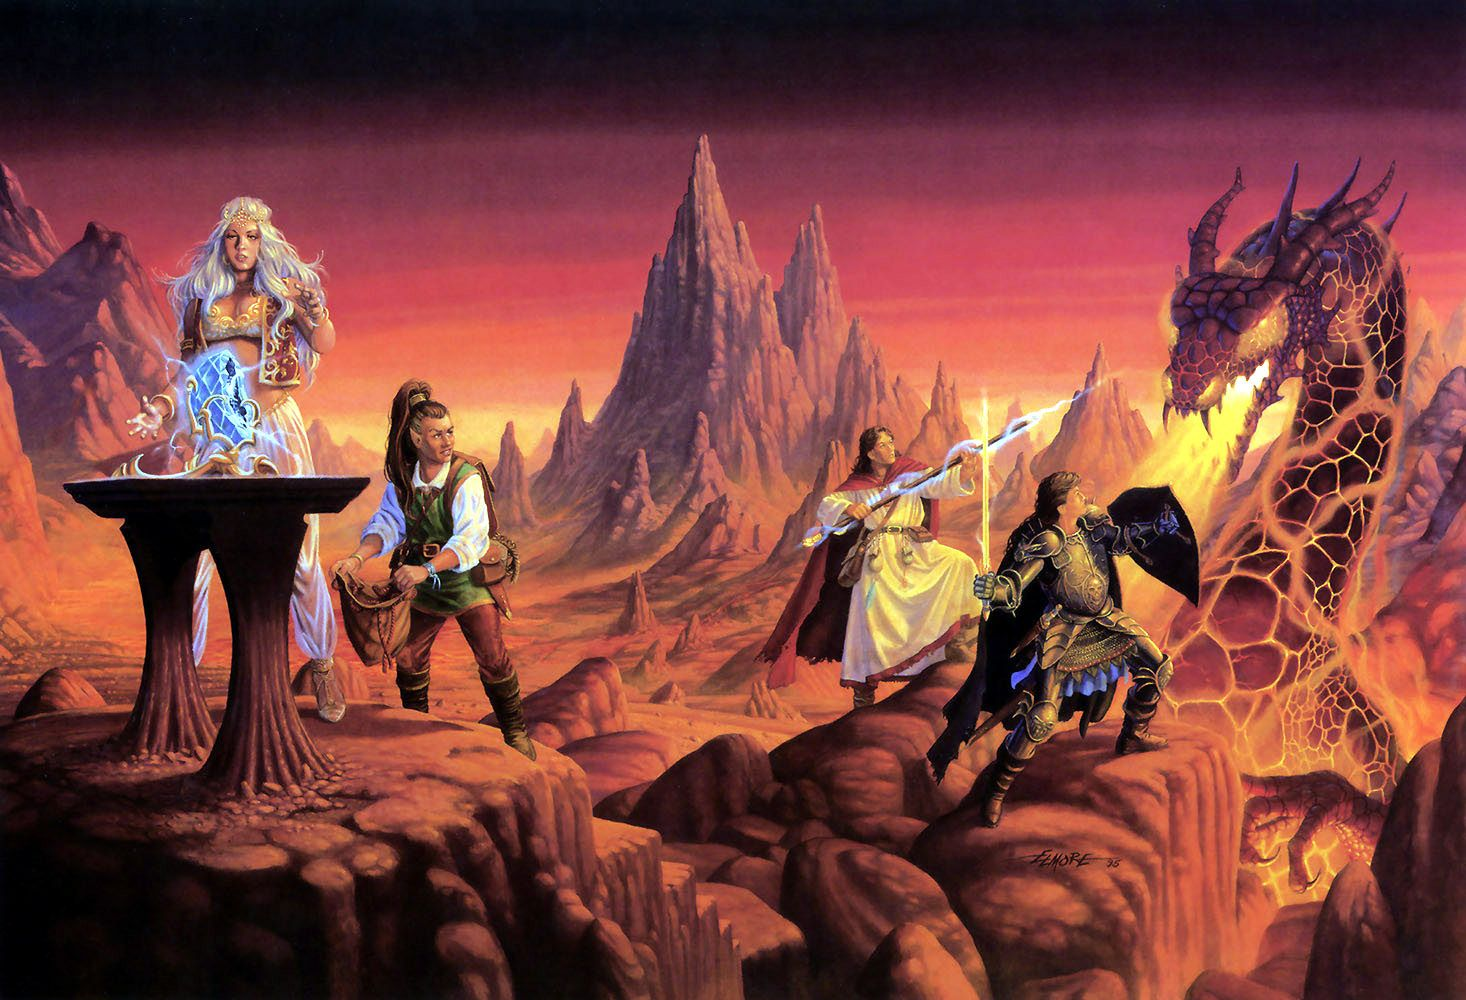 Dragonlance, Chronicles, Dragons of Summer Flame by Larry Elmore.